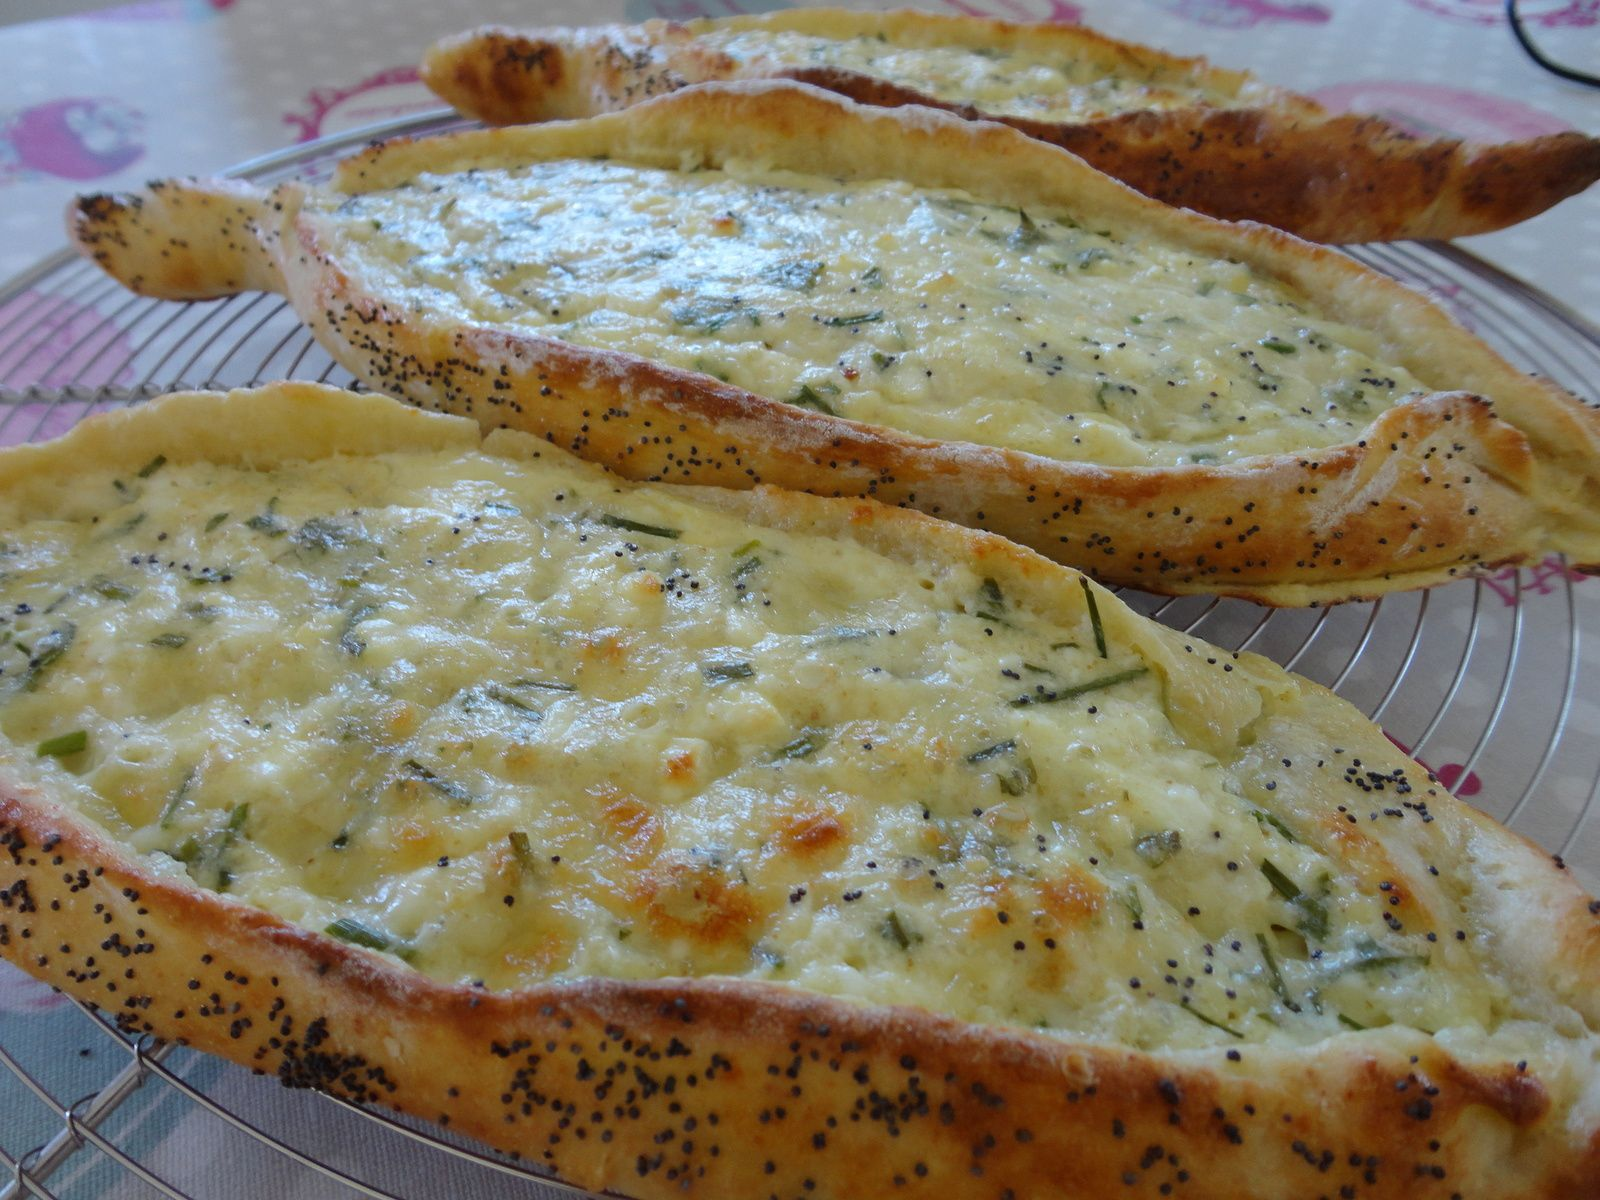 Peynirli Pide (pizza turque au fromage)